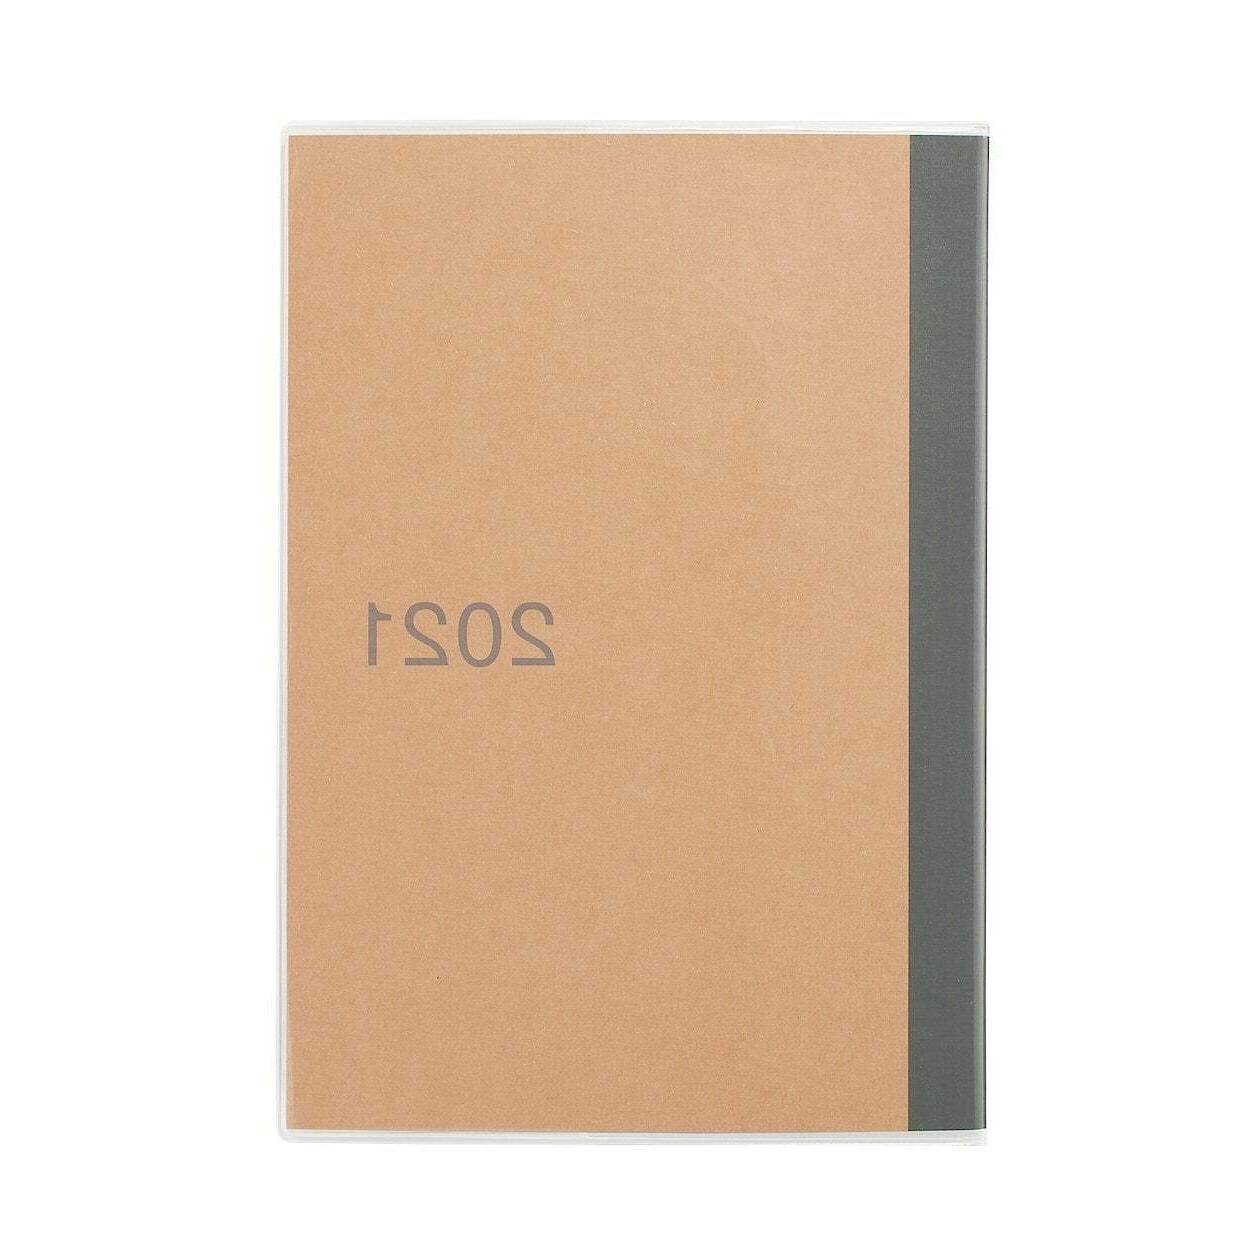 MUJI japan 2021 A6 size monthly schedule planner book craft